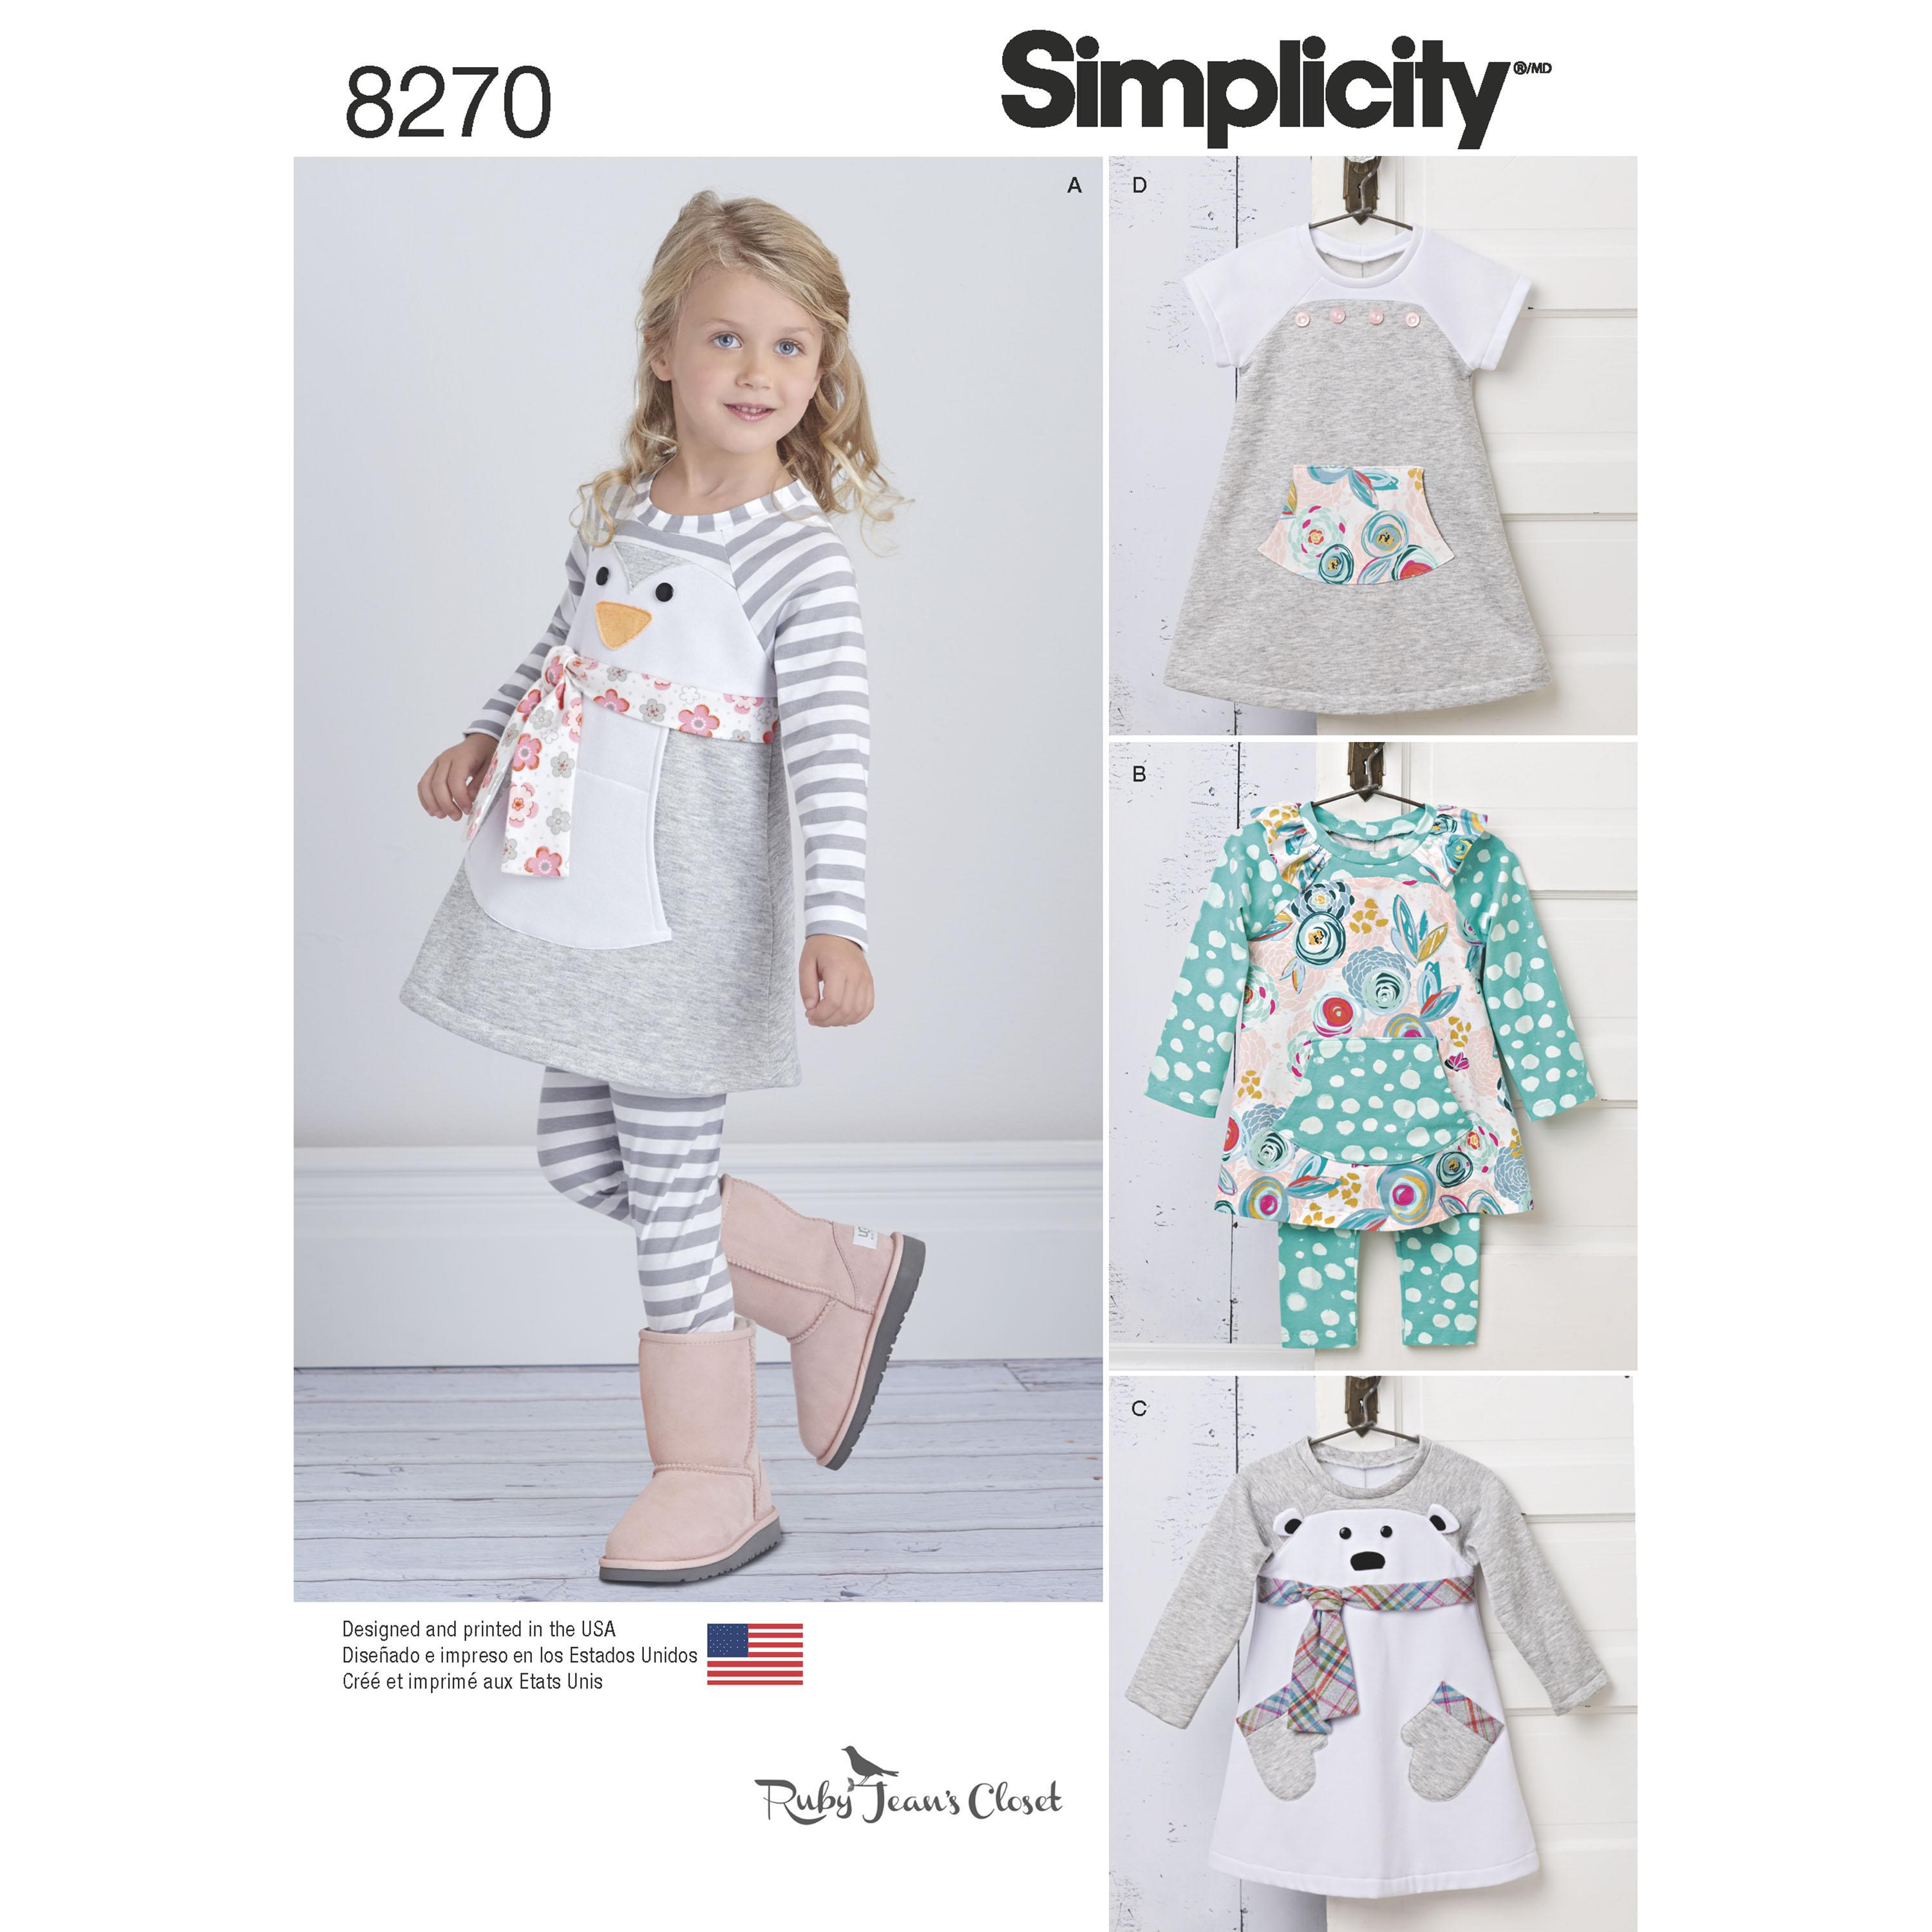 Simplicity S8270 Toddlers' Knit Sportswear from Ruby Jean's Closet